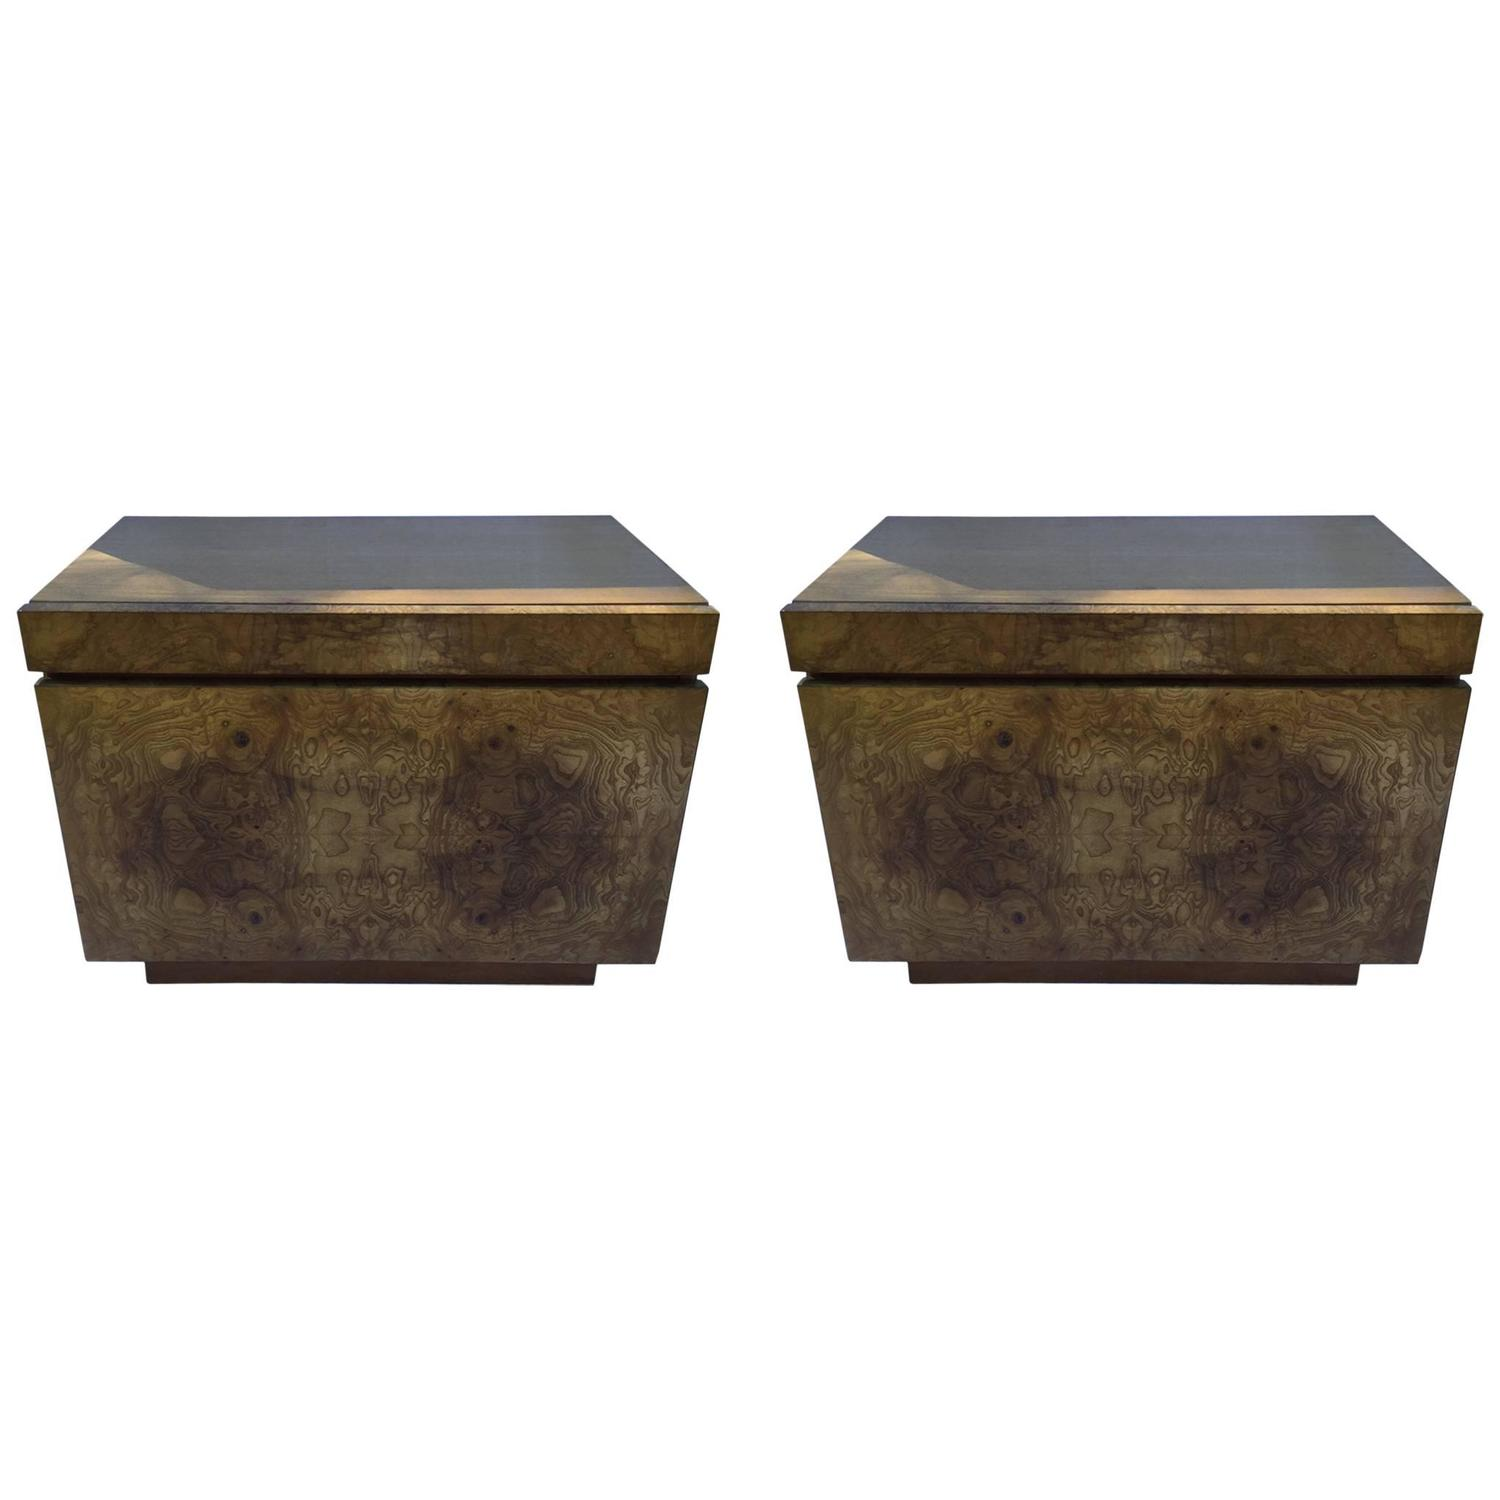 Pair Of Burl Wood End Tables Nightstands By Lane For Sale